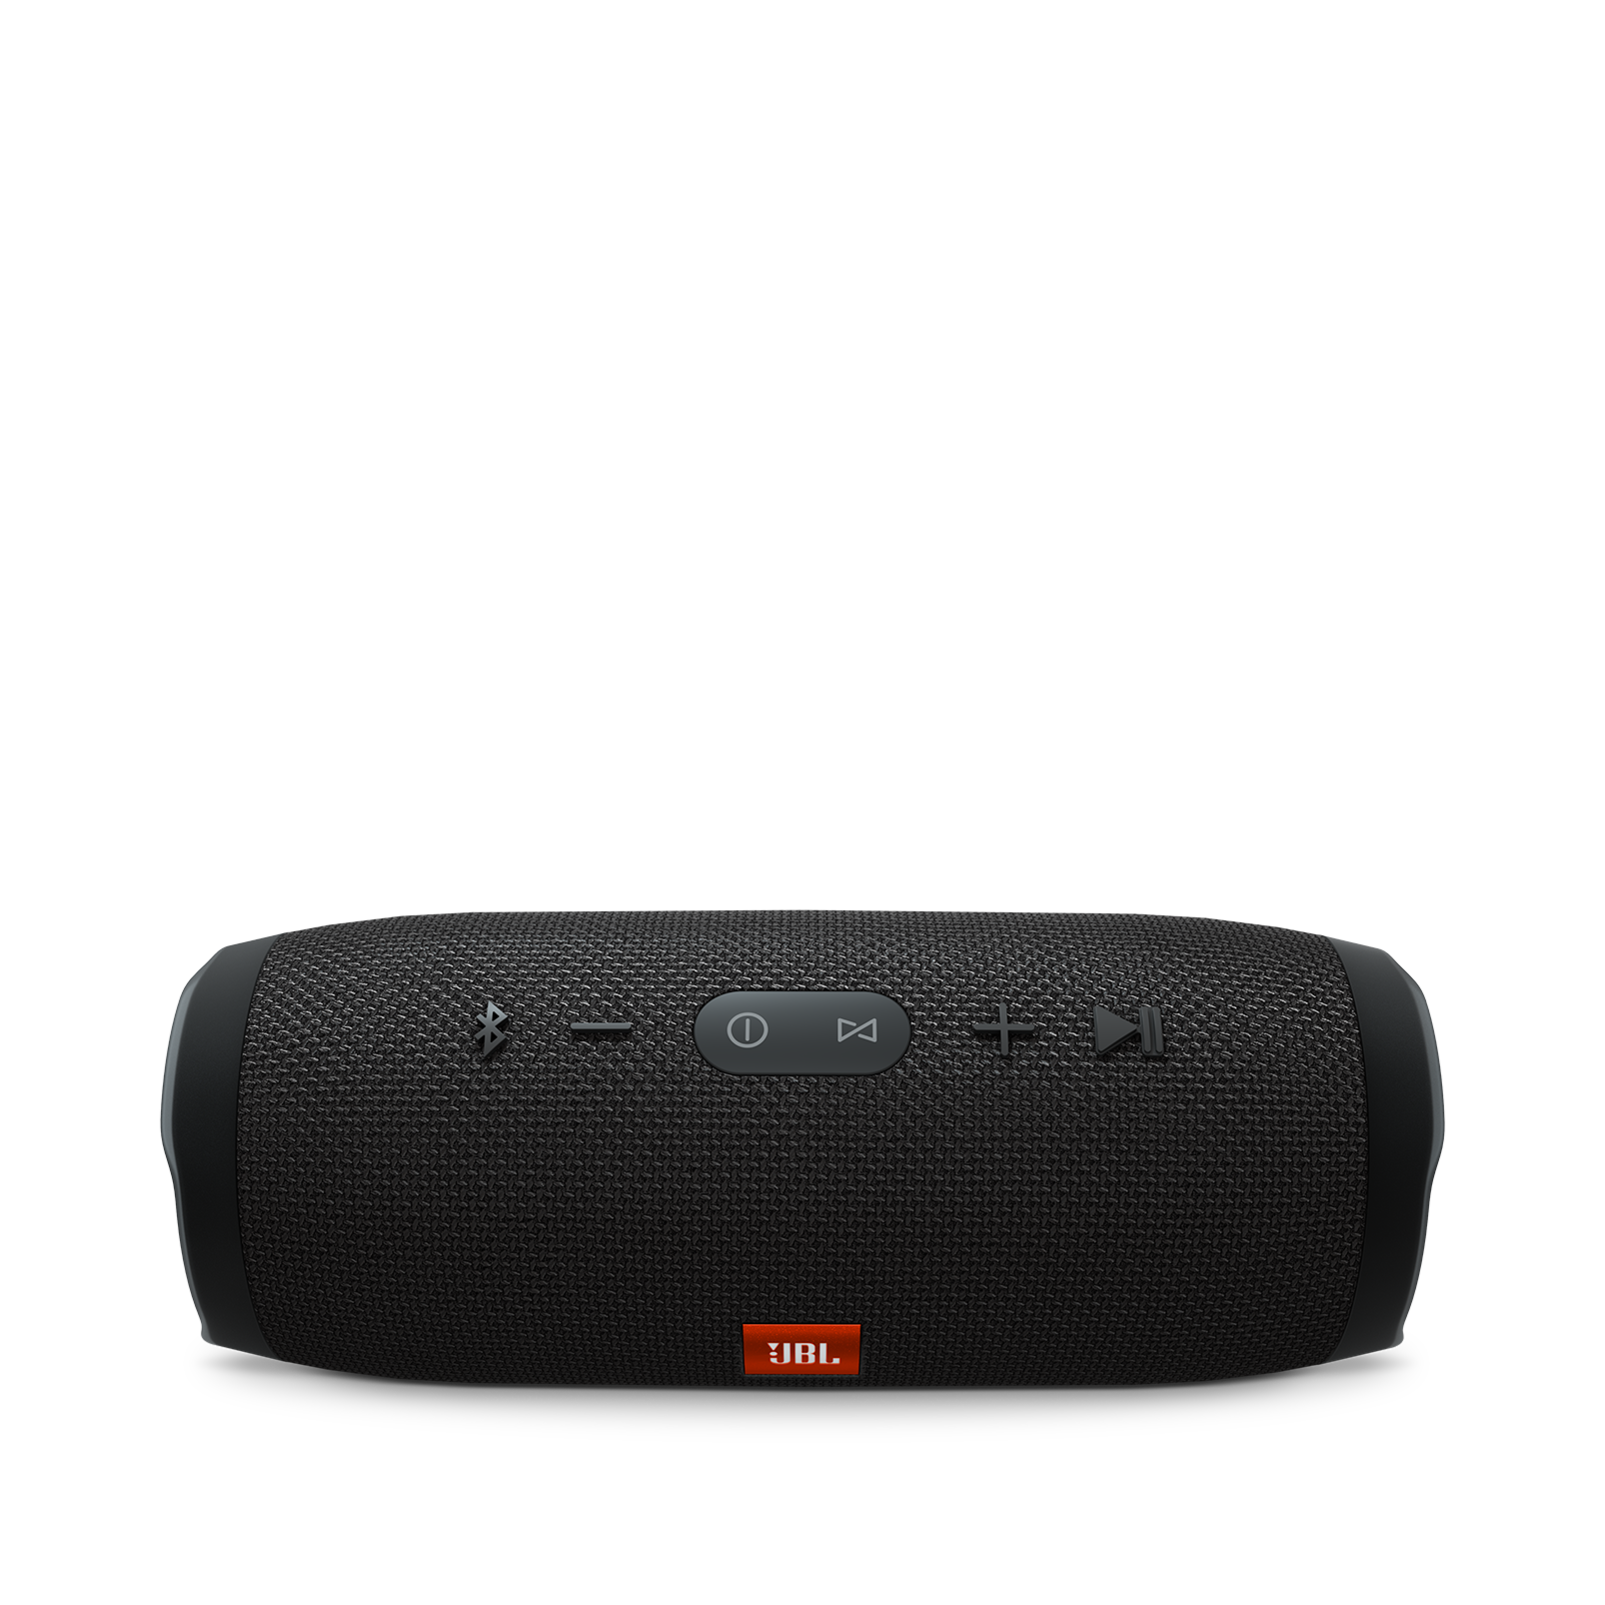 Jbl Charge 3 Waterproof Portable Recharge Bluetooth Speaker W/ Speakerphone Audio Docks & Mini Speakers Consumer Electronics